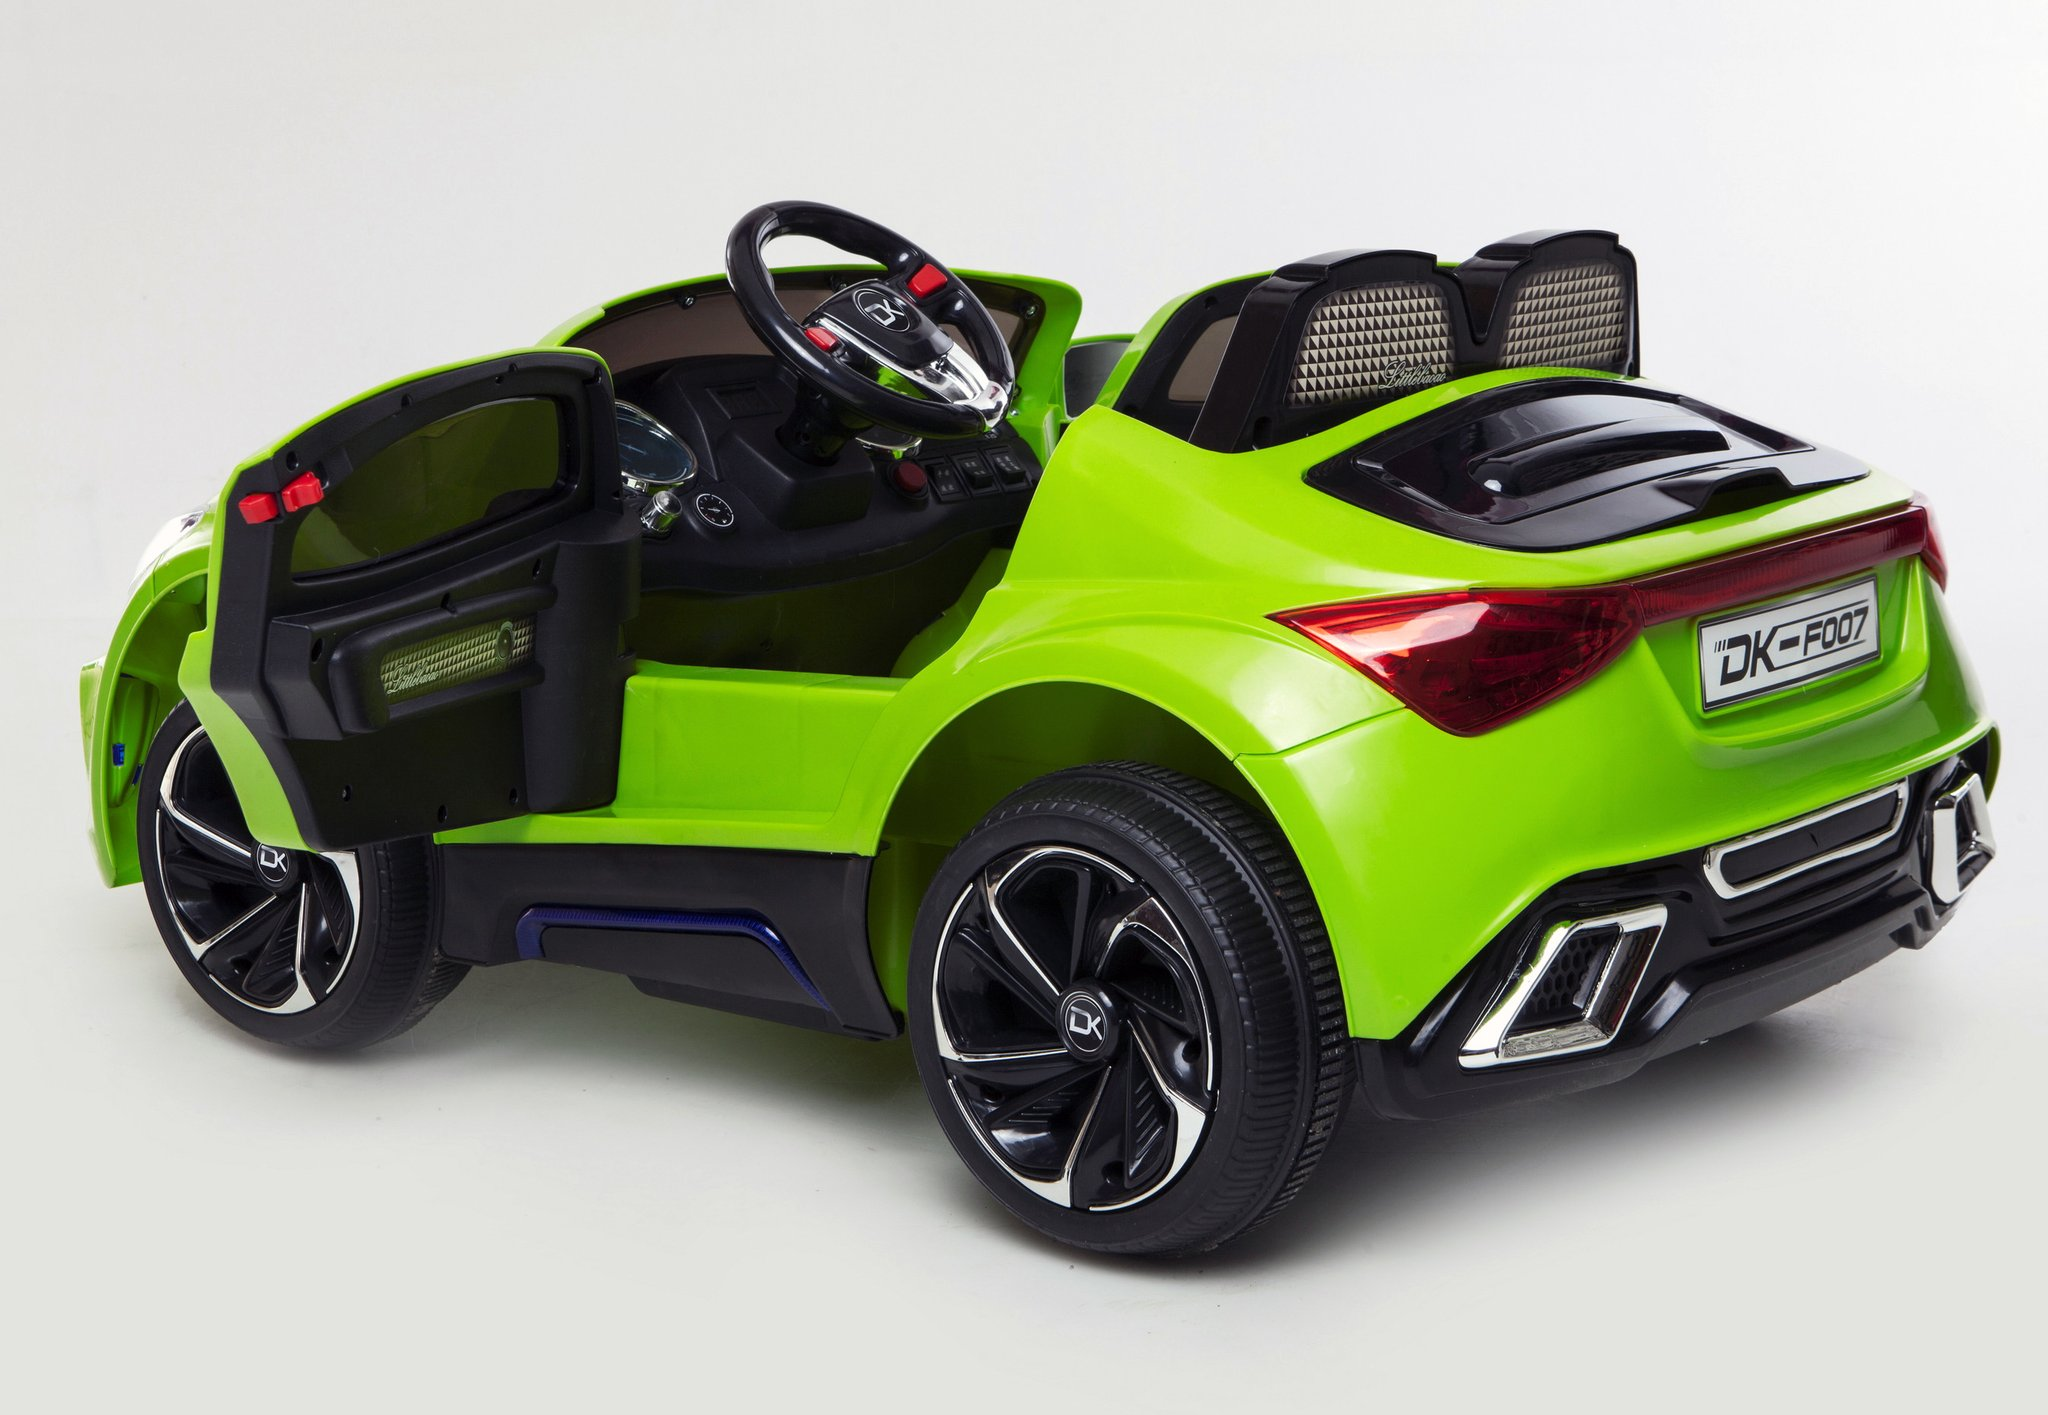 12v battery powered kids electric ride on toy car model f007 green